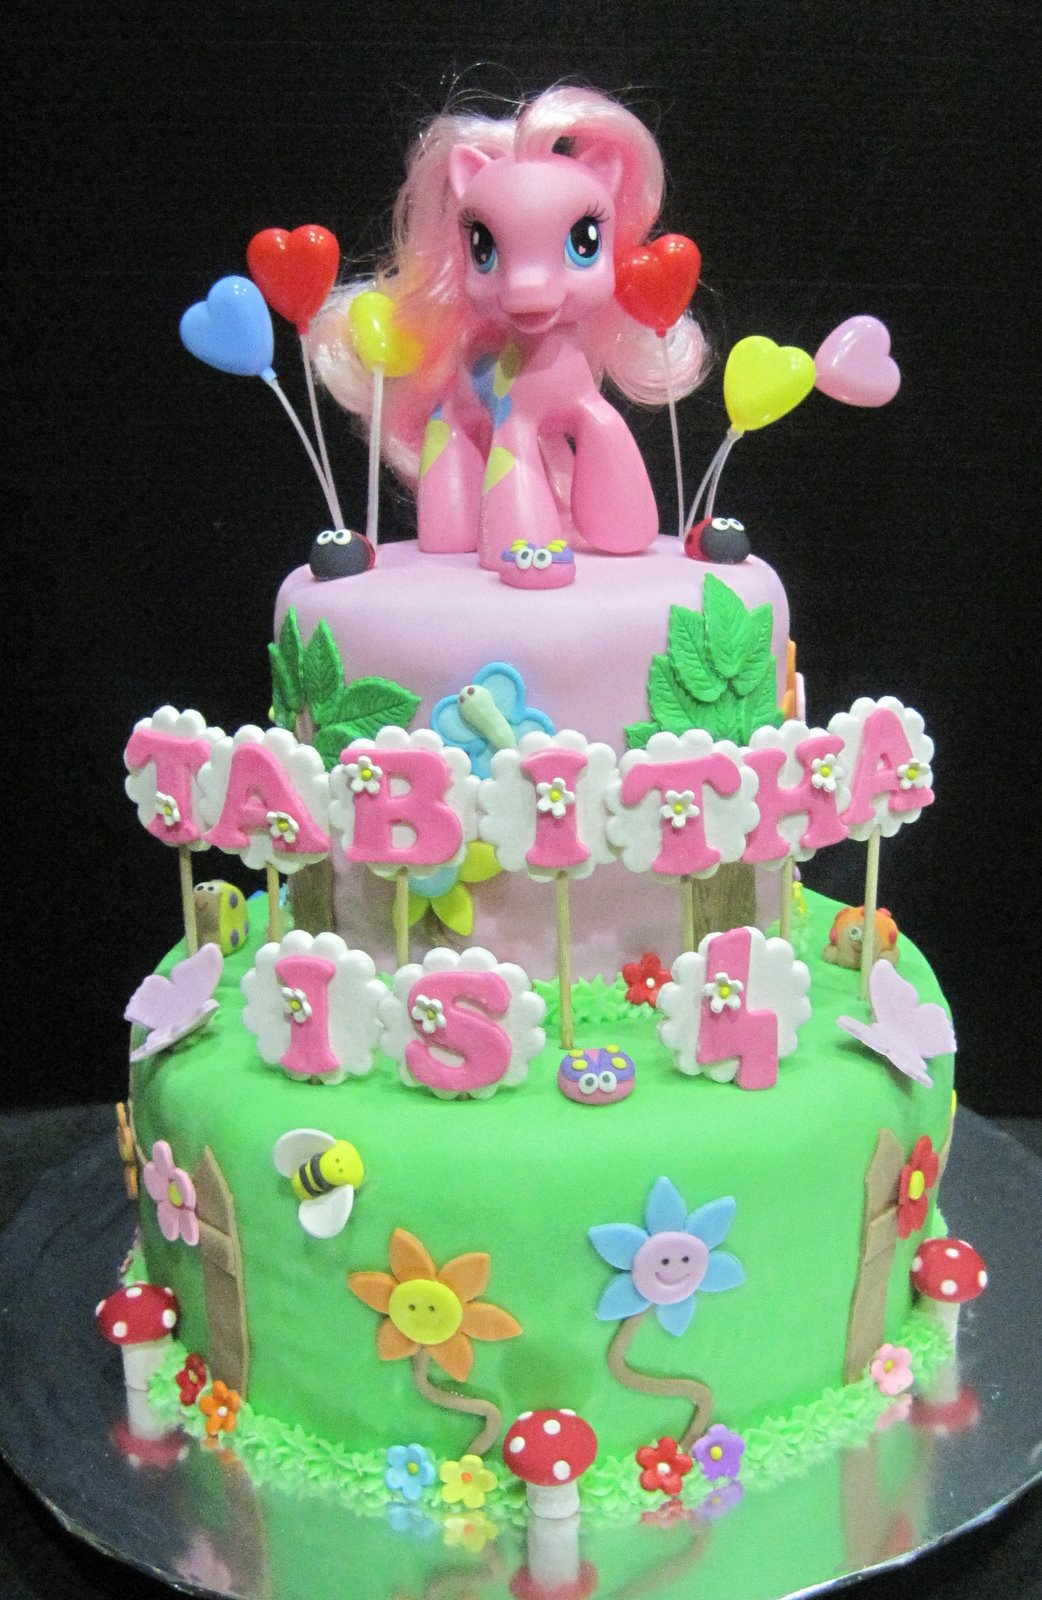 Cake Designs My Little Pony : Cupcake Divinity: My Little Pony Cake